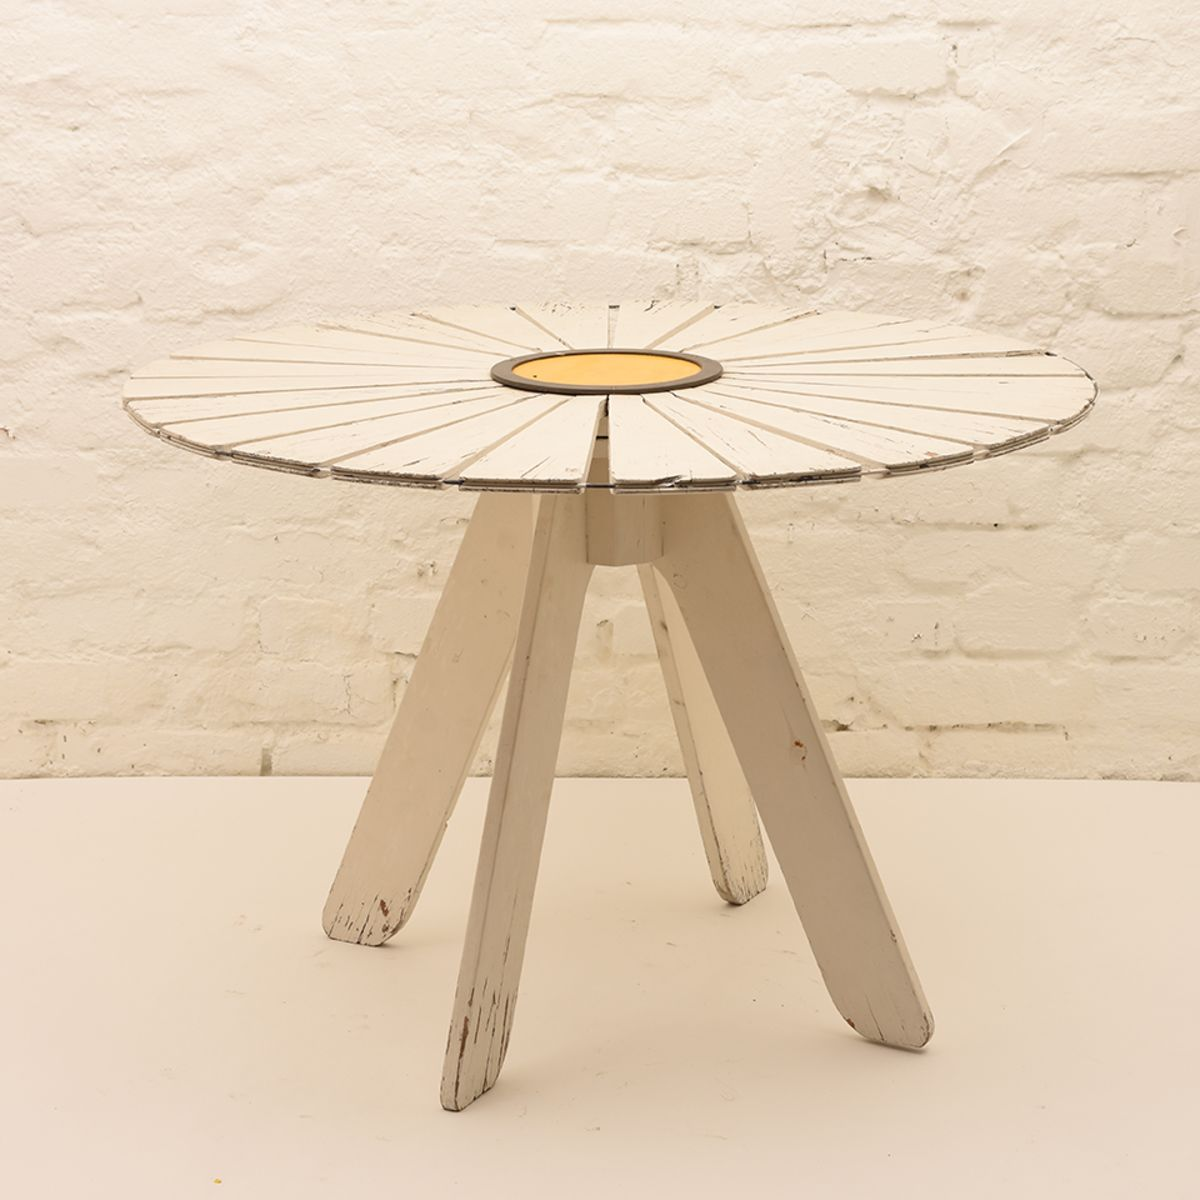 Alvar-Aalto_Sunflower-Garden-Table